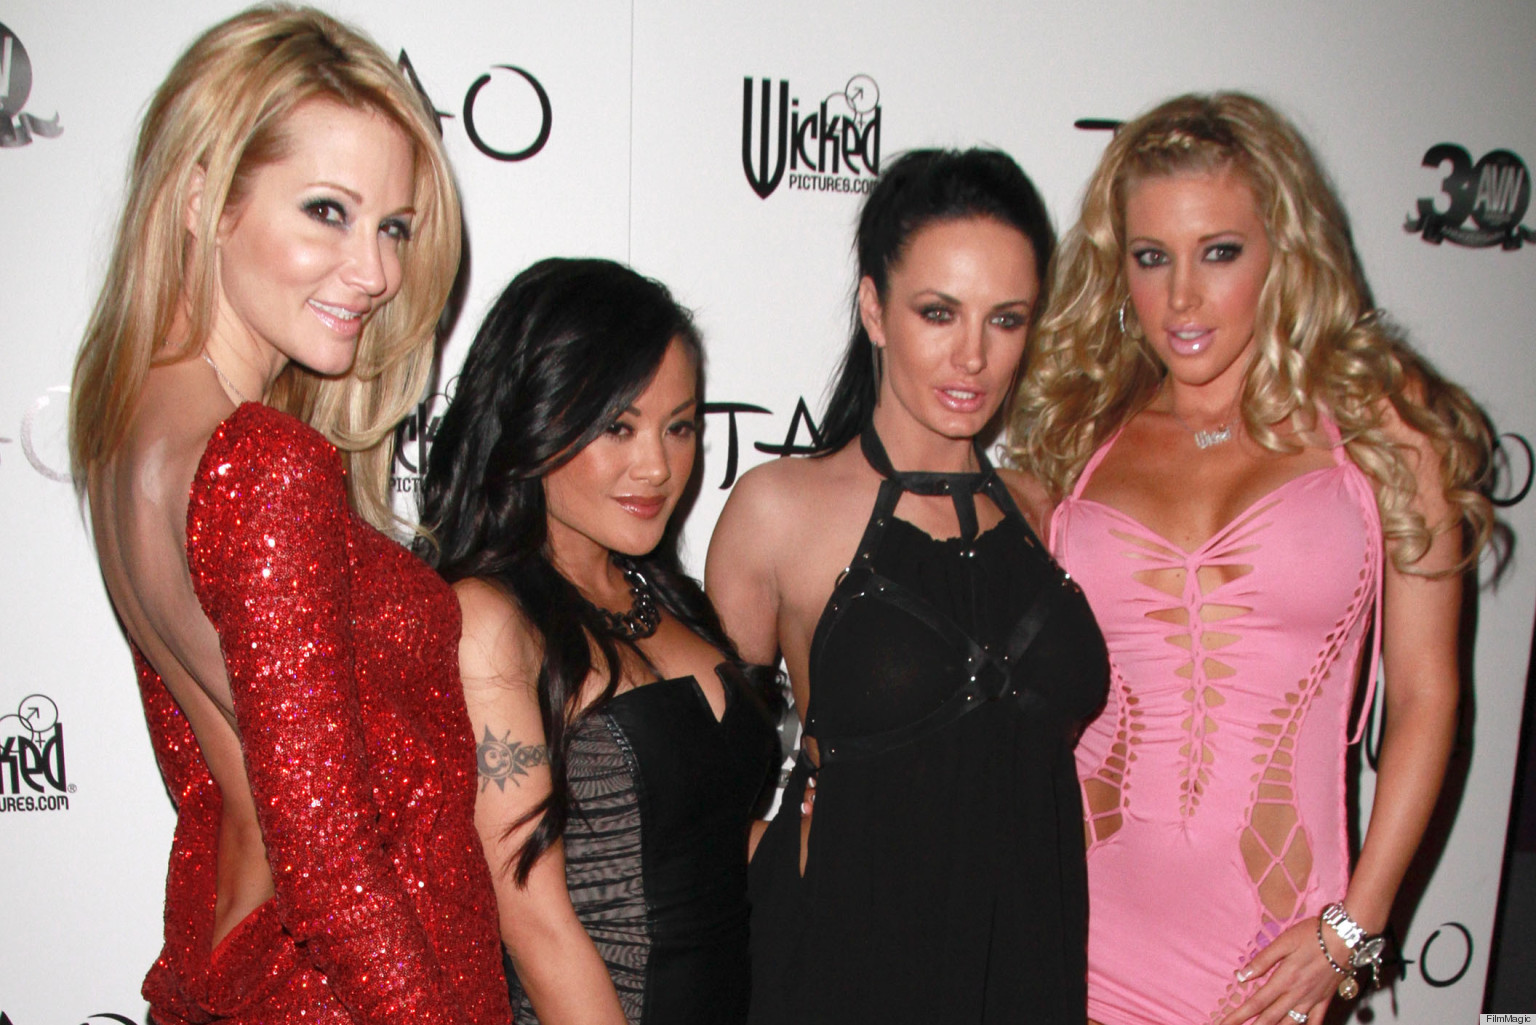 AVN Awards Pre Party Brings Showcases Porn Stars Fashion Sense PHOTOS